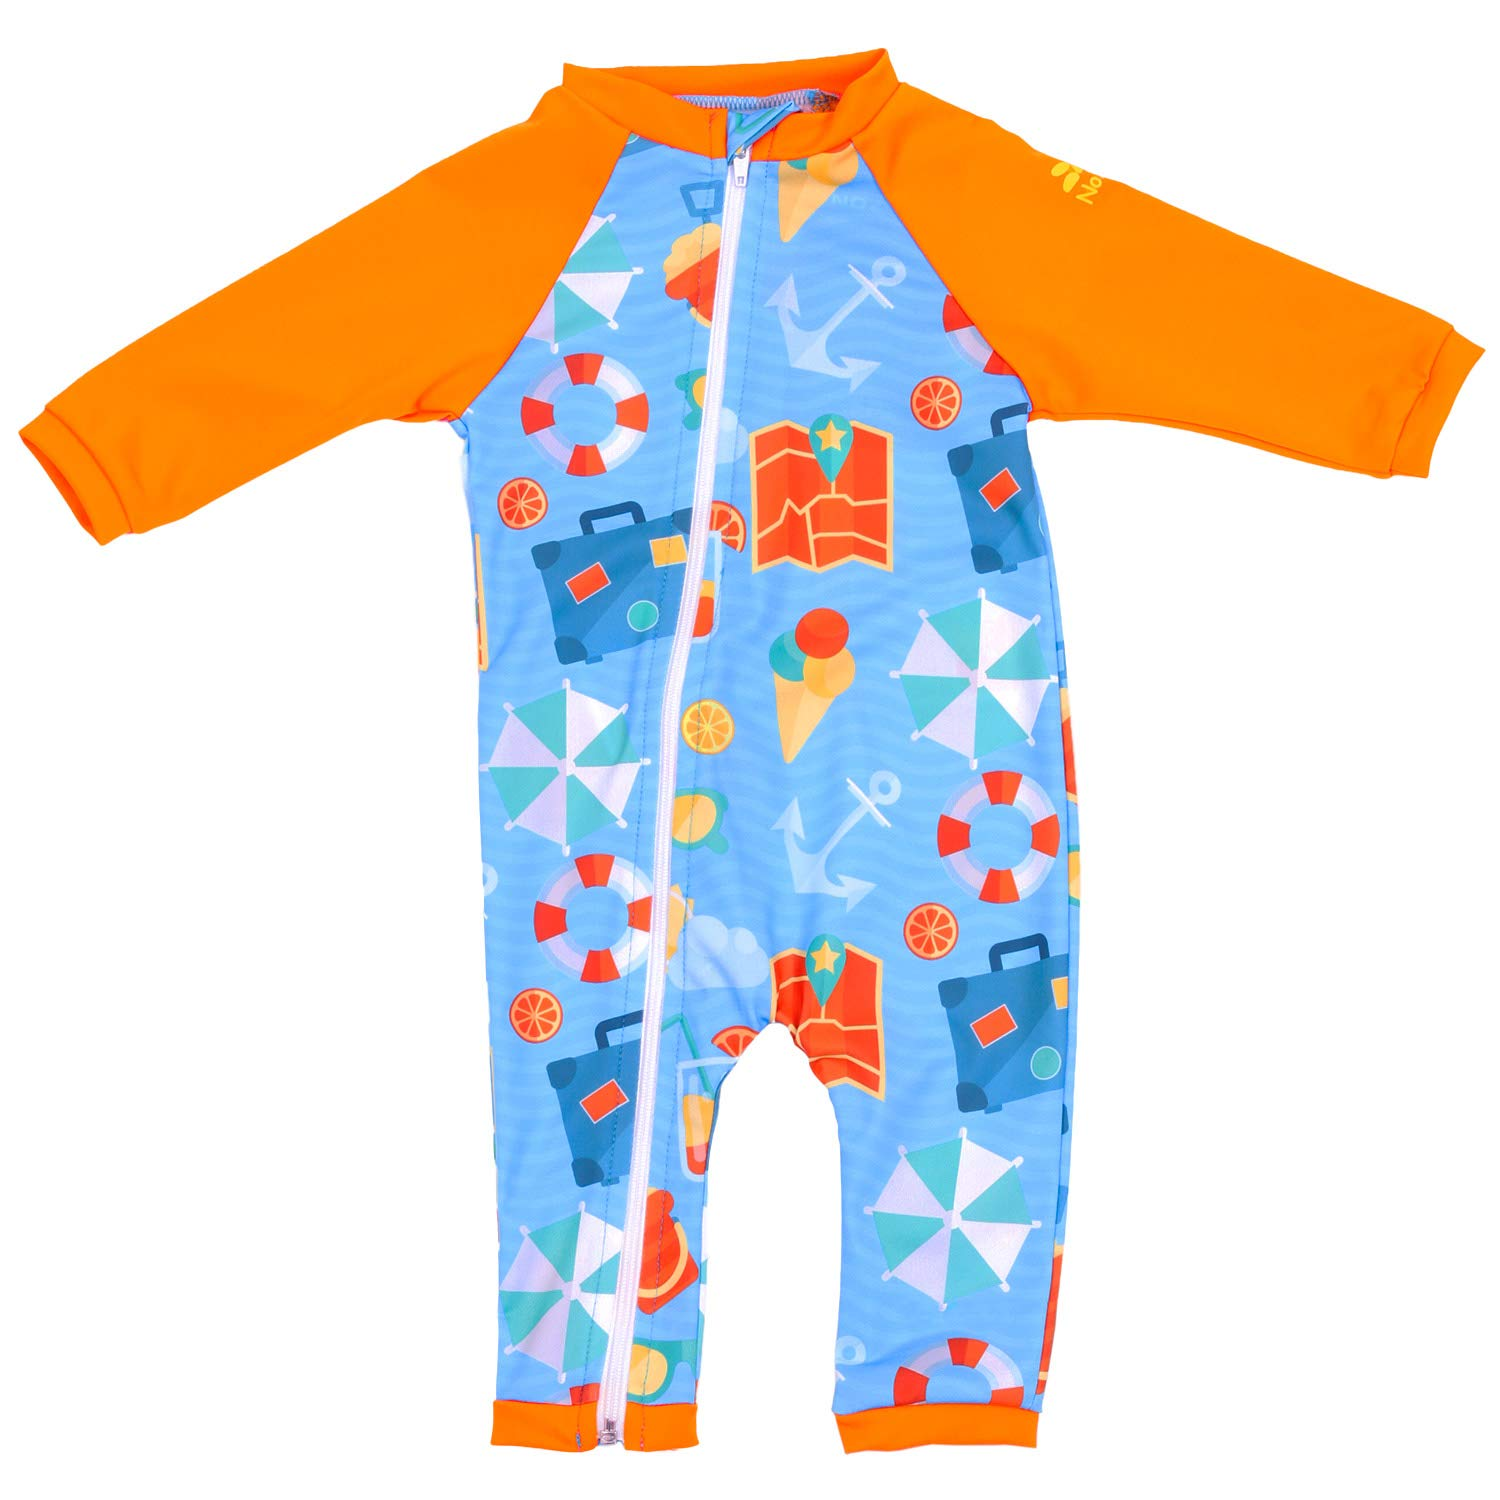 UPF 50+ Nozone Full Zip Sun Protective Baby Swimsuit in Your Choice of Colors